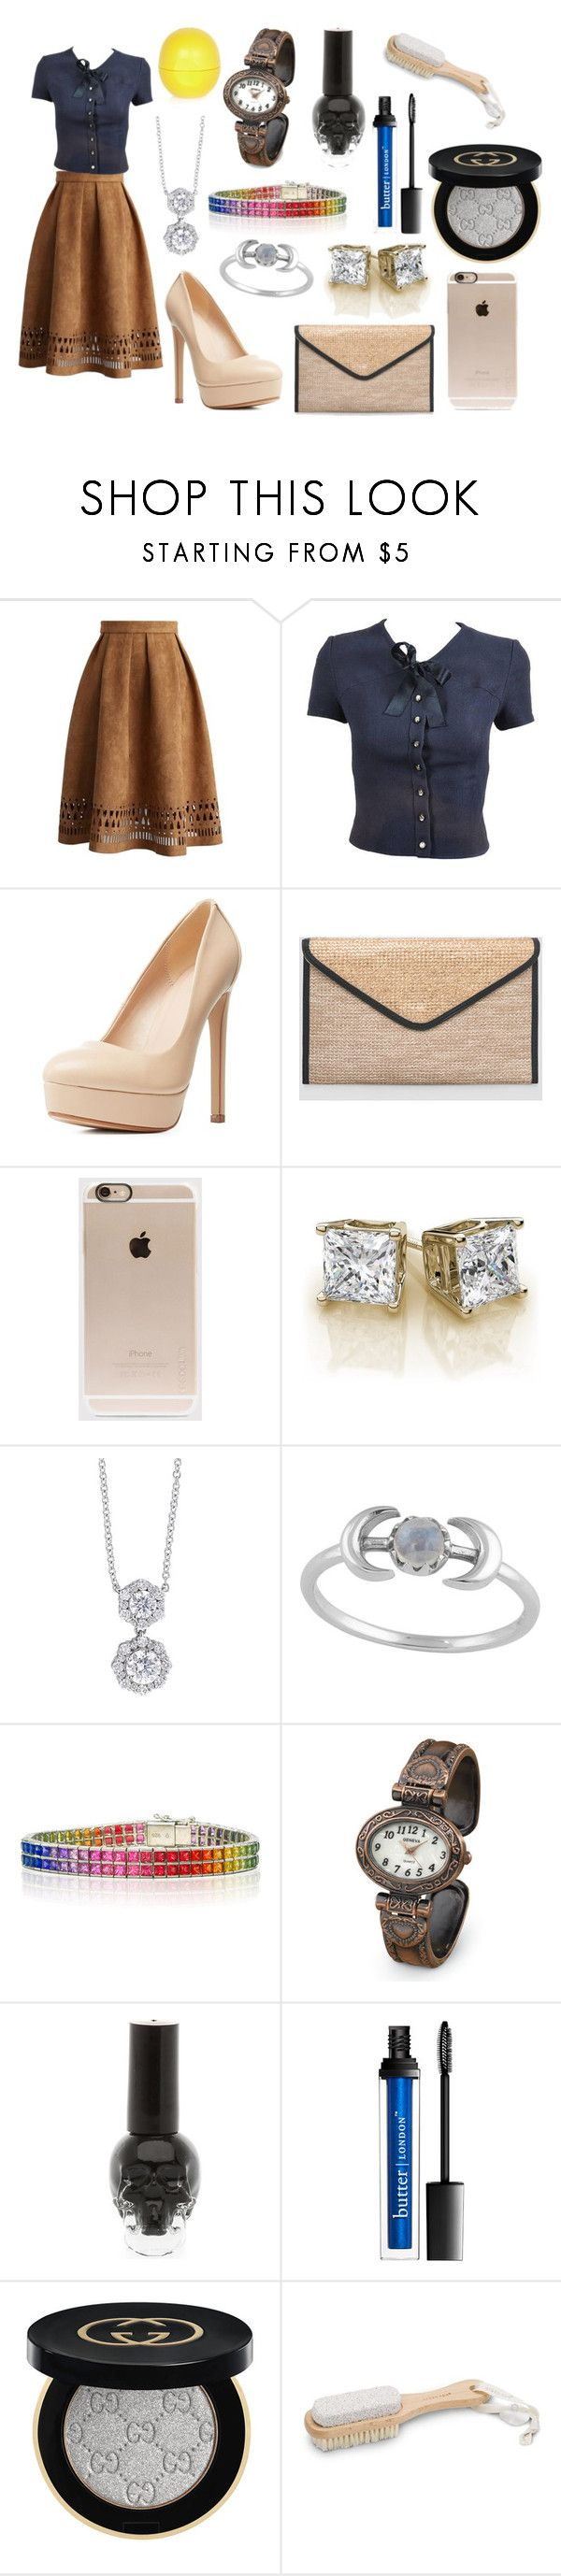 """""""Sin título #2892"""" by onedirection-h1n1l2z1 on Polyvore featuring Chicwish, Chanel, Charlotte Russe, Ashley Stewart, Incase, Forevermark, Gucci, Urban Spa, River Island y men's fashion"""